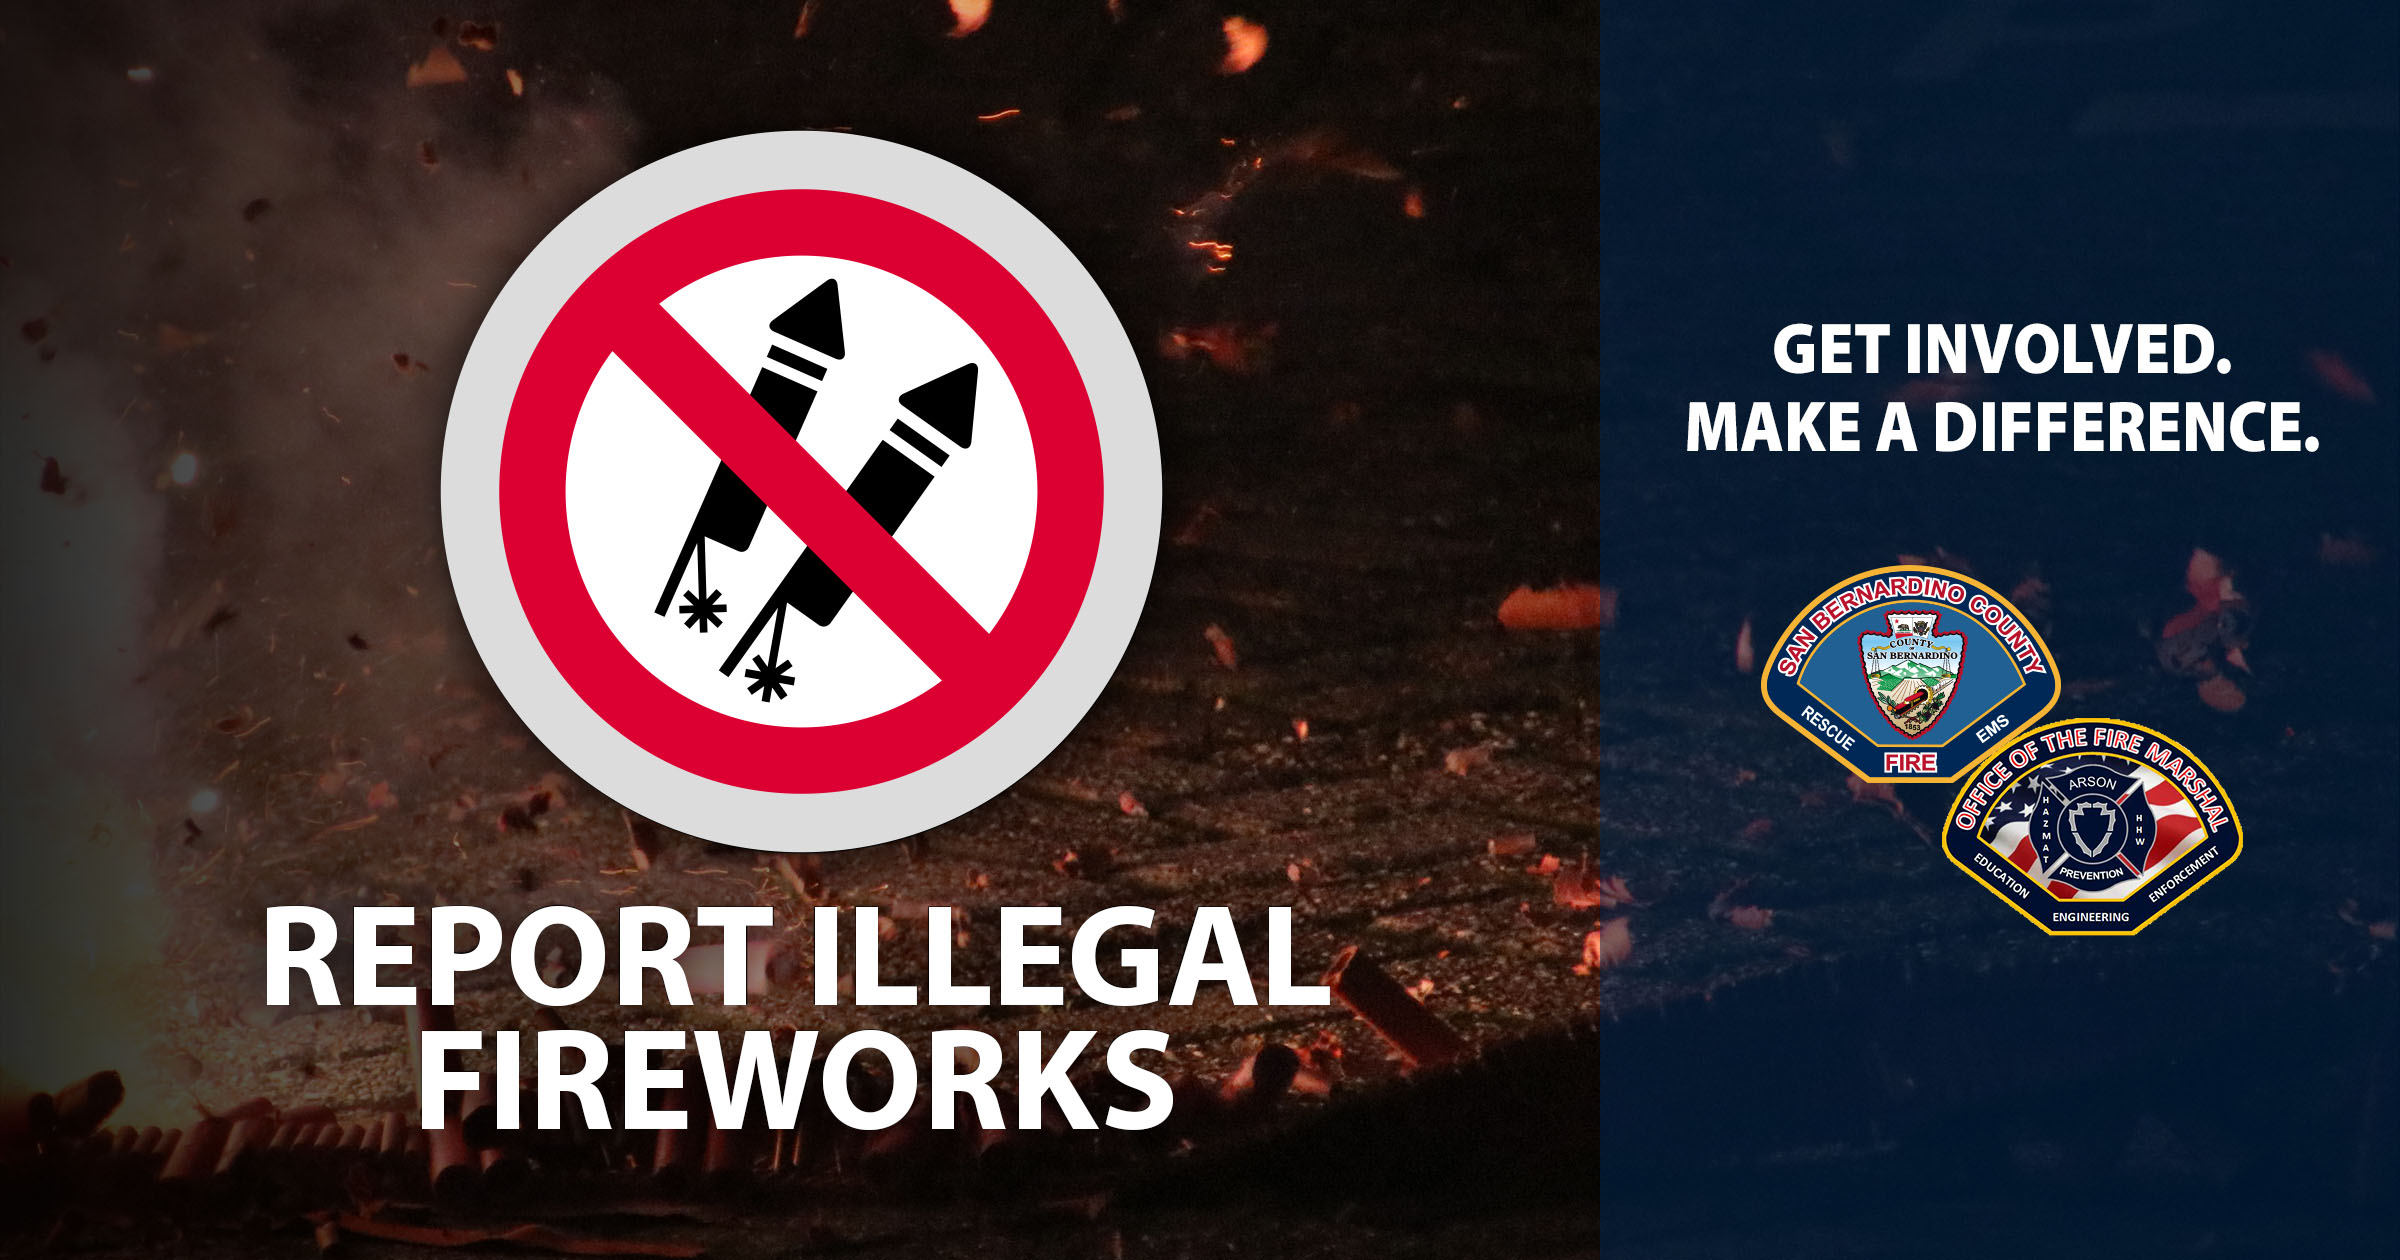 County to Issue Contact-Free Citations for Illegal Fireworks